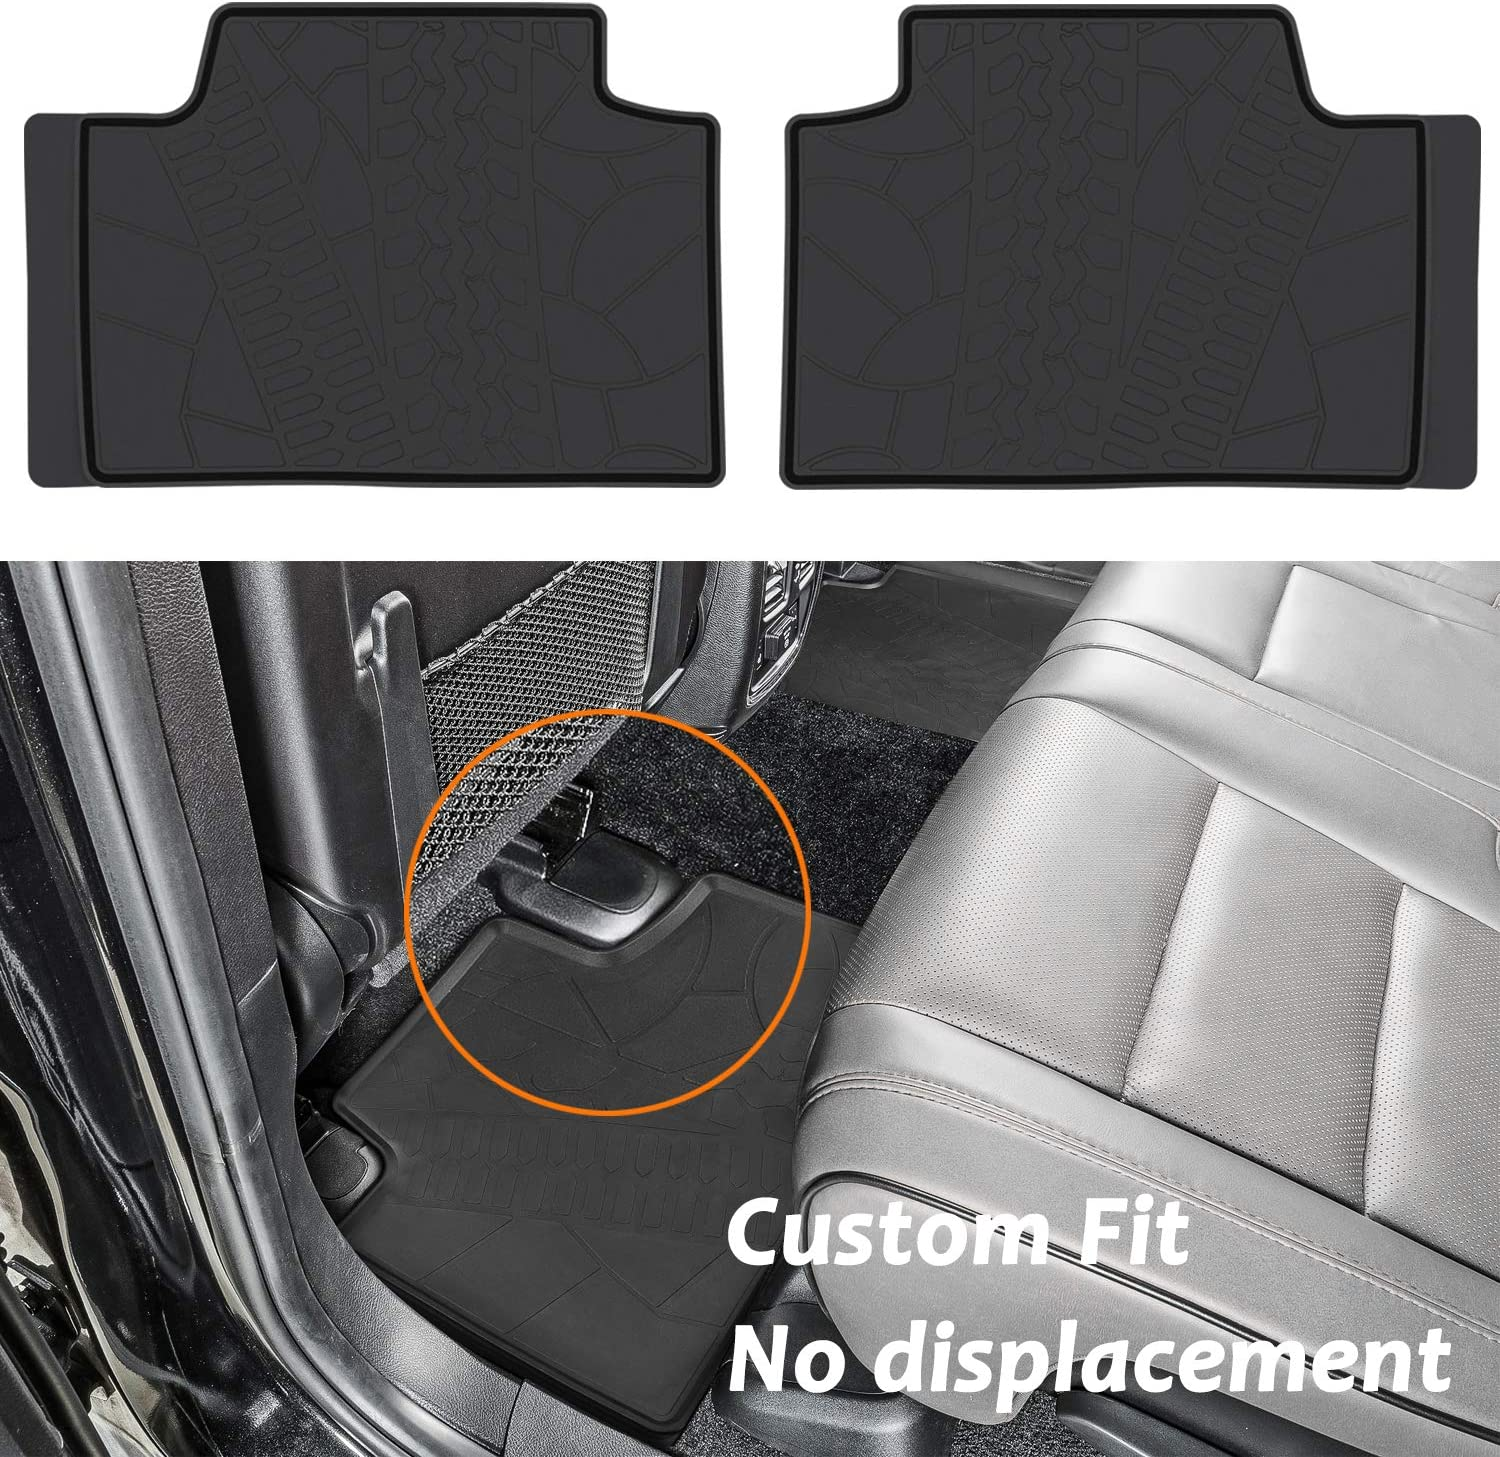 Bonbo Floor Mats for Jeep Grand Cherokee 2017 2018 2019 2020 Custom Fit Front /& Rear Seat Liner Mats All-Weather Guard Heavy Duty Eco-Friendly Rubber Waterproof Pack of 4